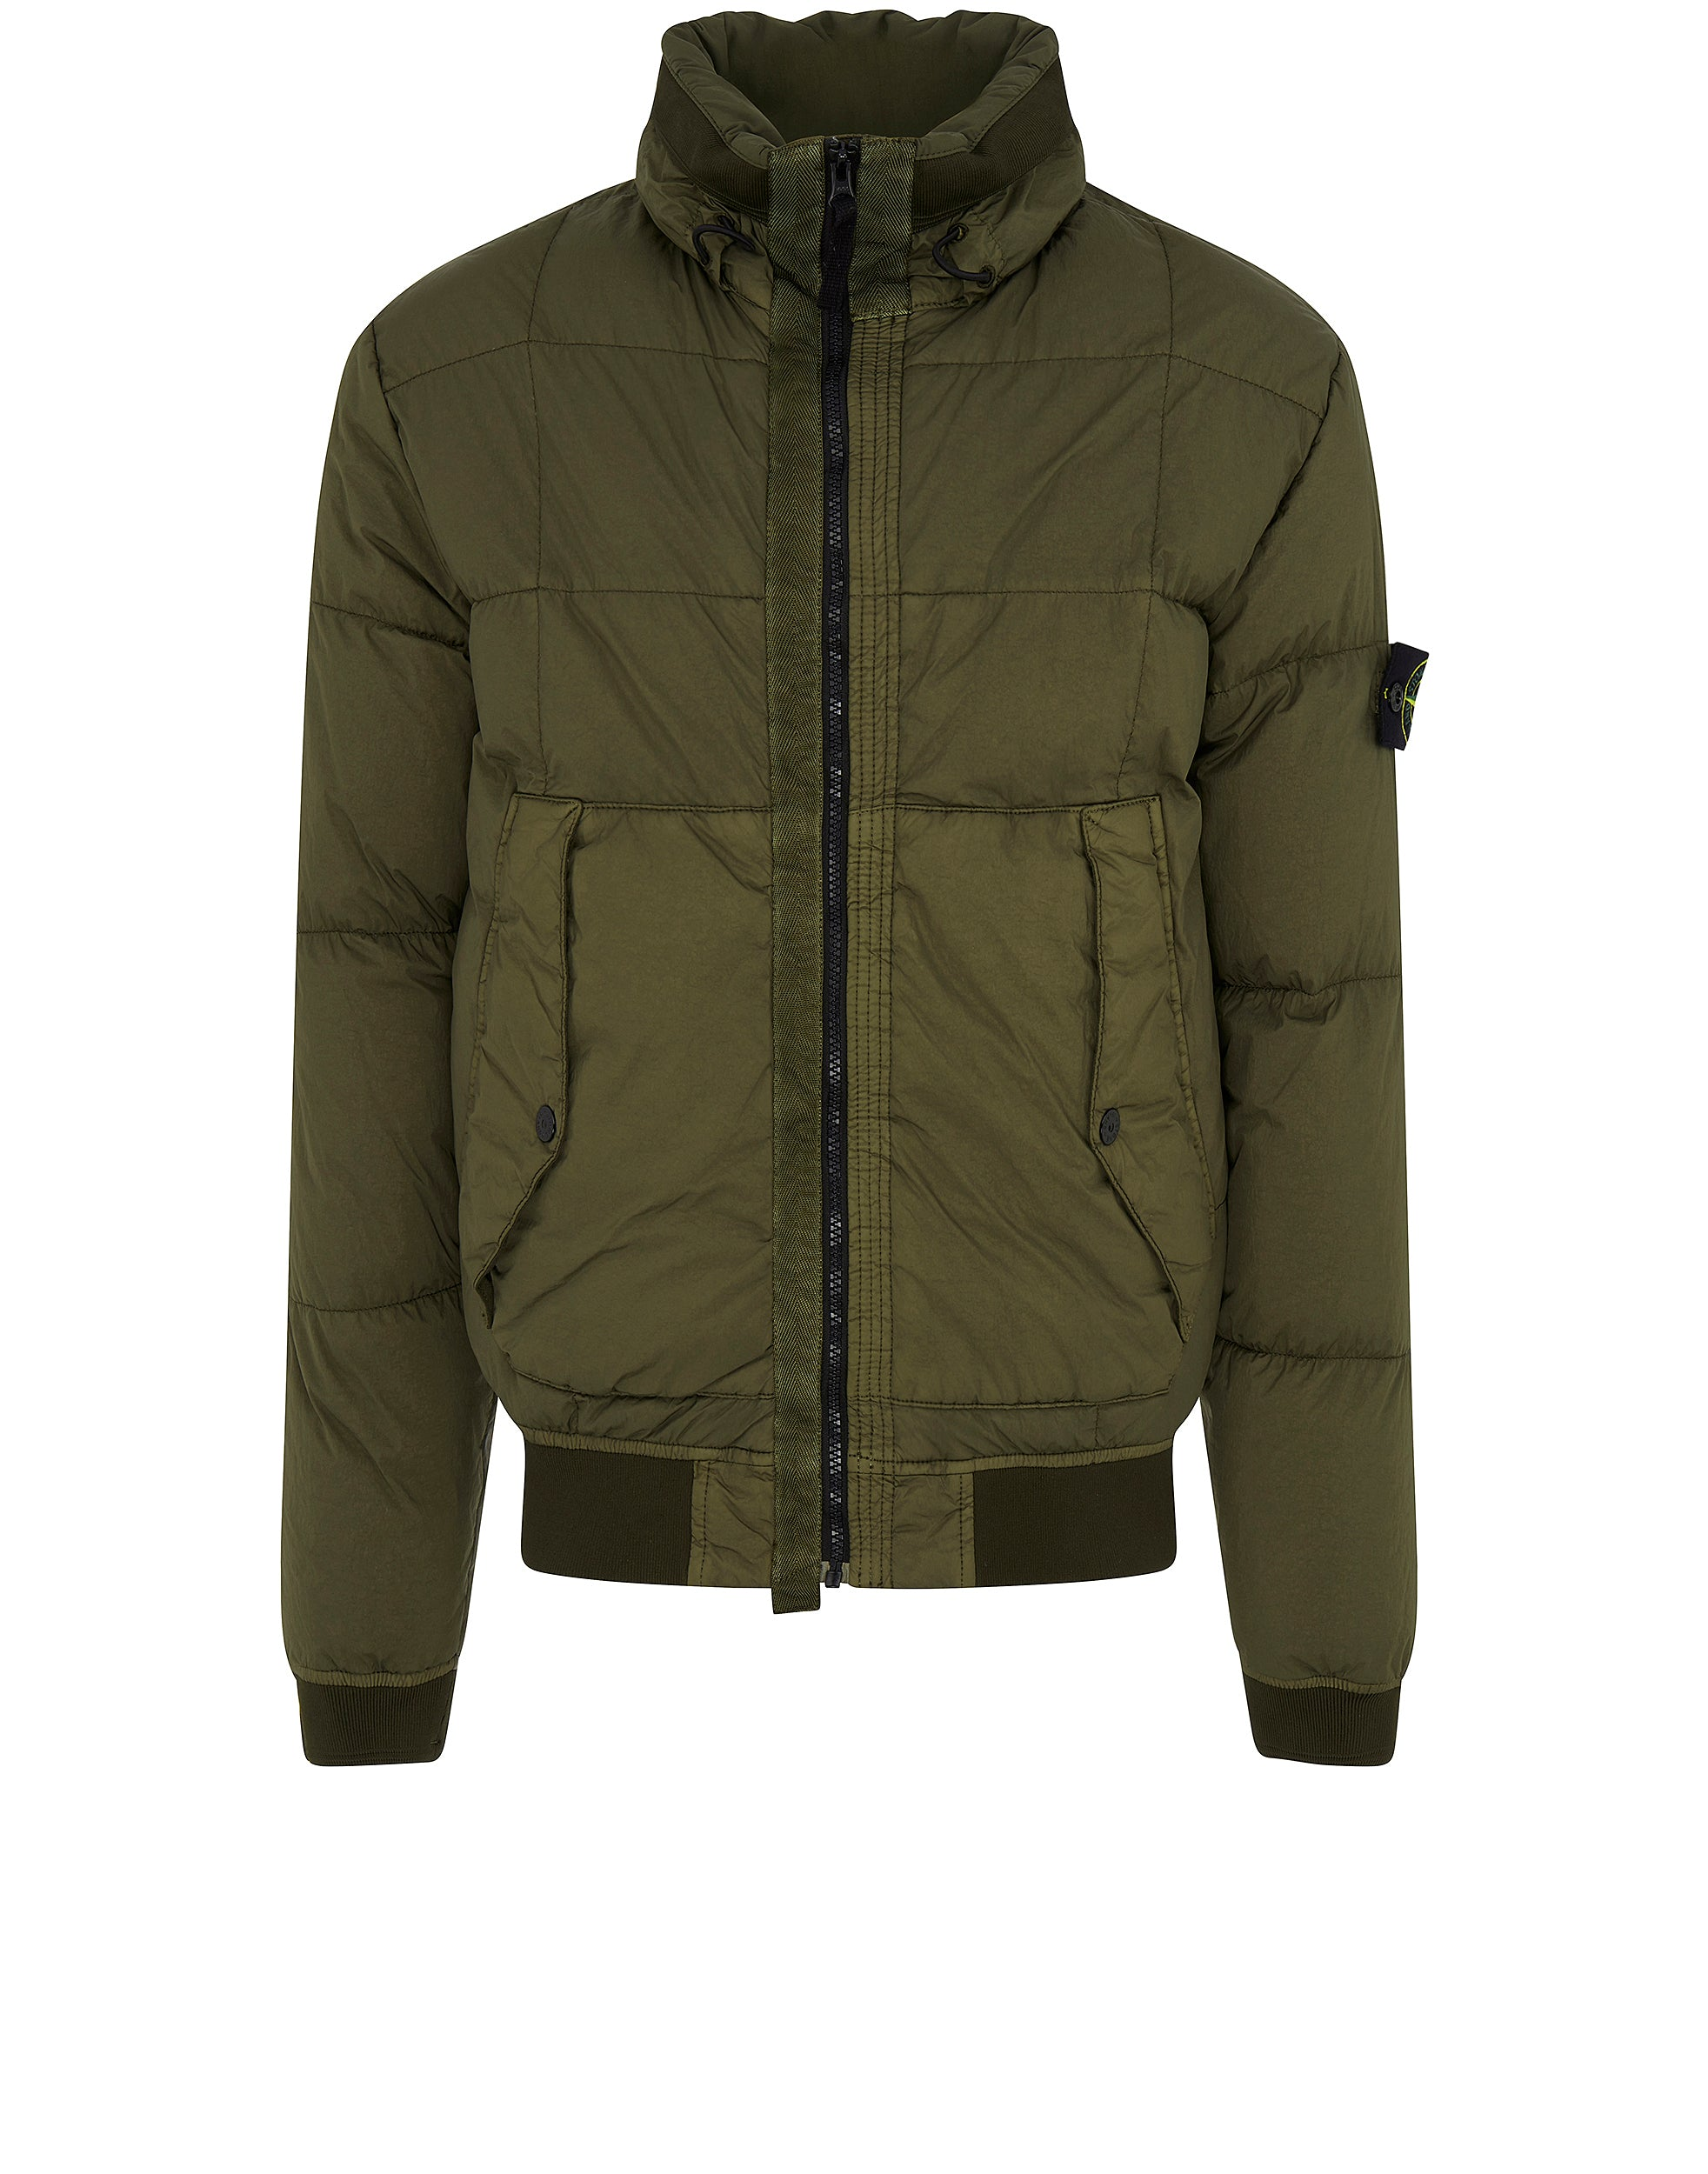 40423 GARMENT-DYED MICRO YARN DOWN Jacket in Olive